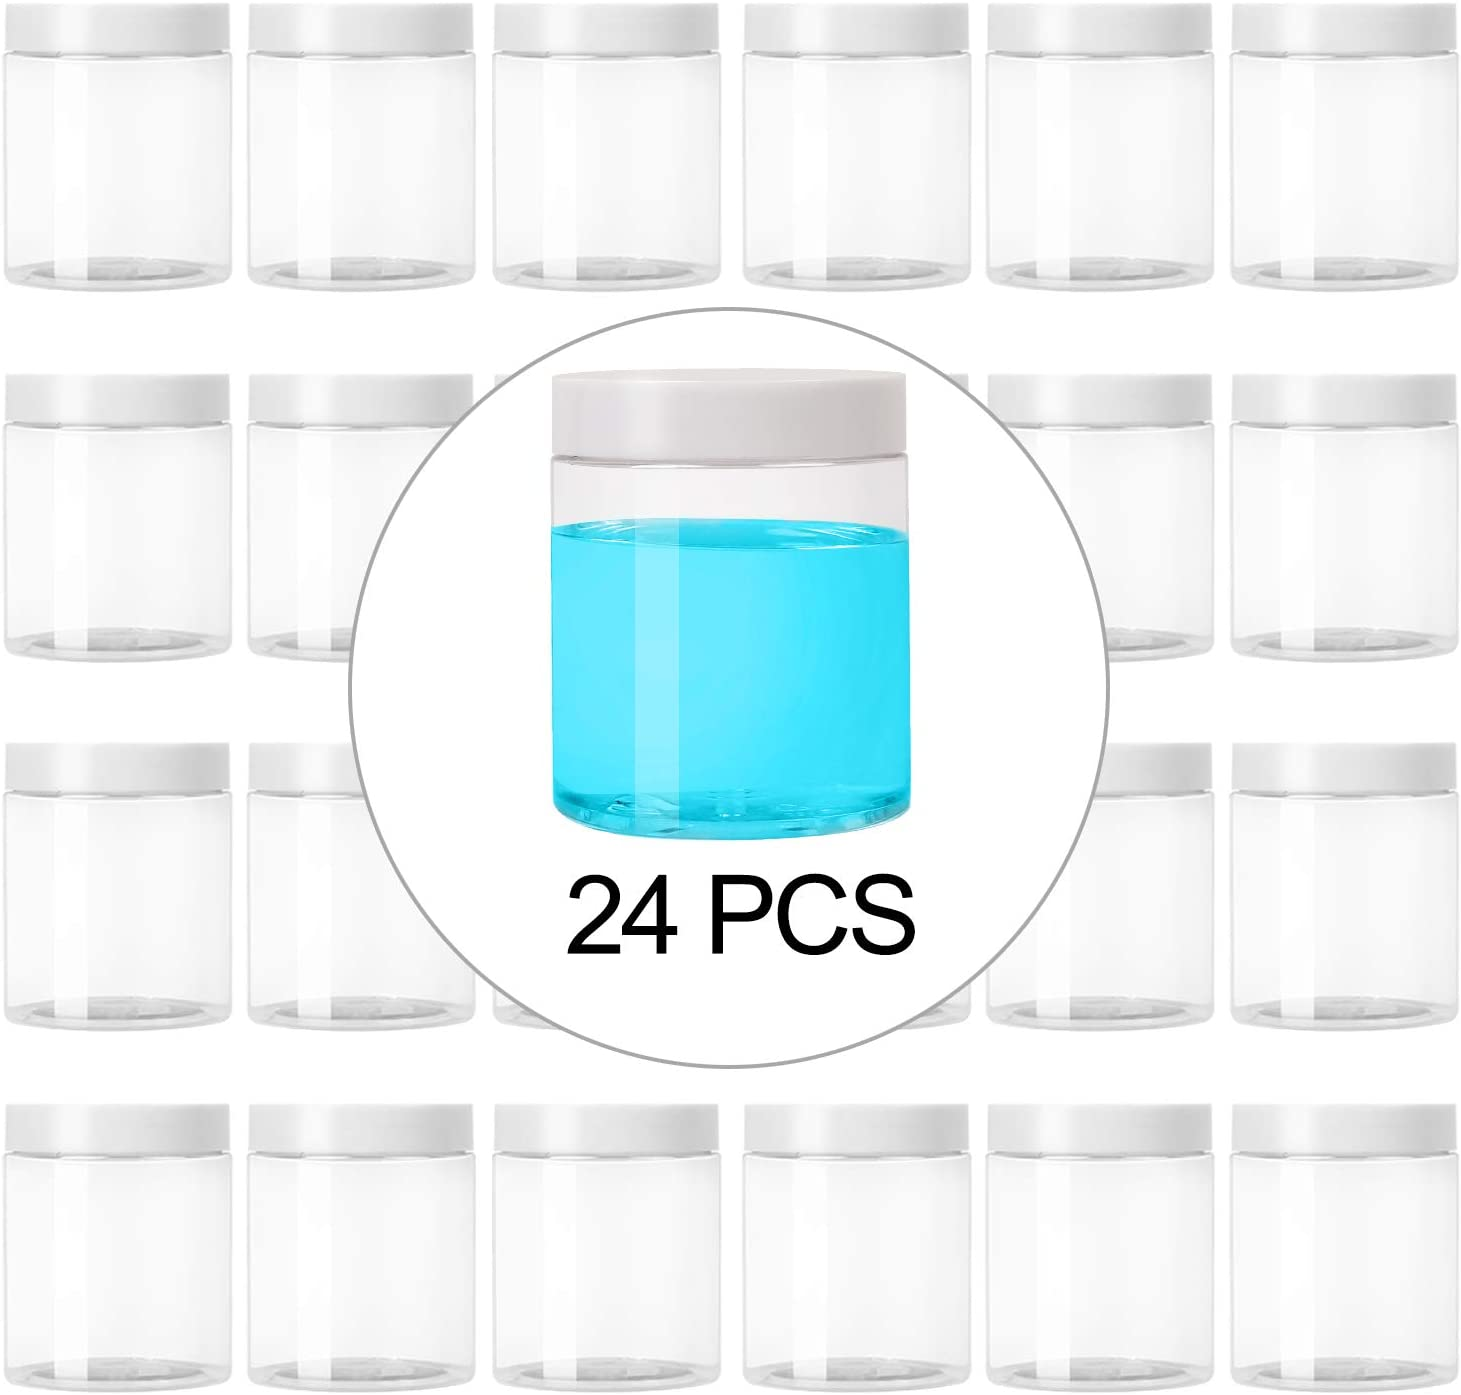 KEILEOHO 24 PCS 8 OZ Slime Containers with White Lids, Food Grade Clear Plastic Slime Storage Containers, BPA Free, Wide-Mouth Plastic Jars for Slime Kit, Food Storage, Beauty Products